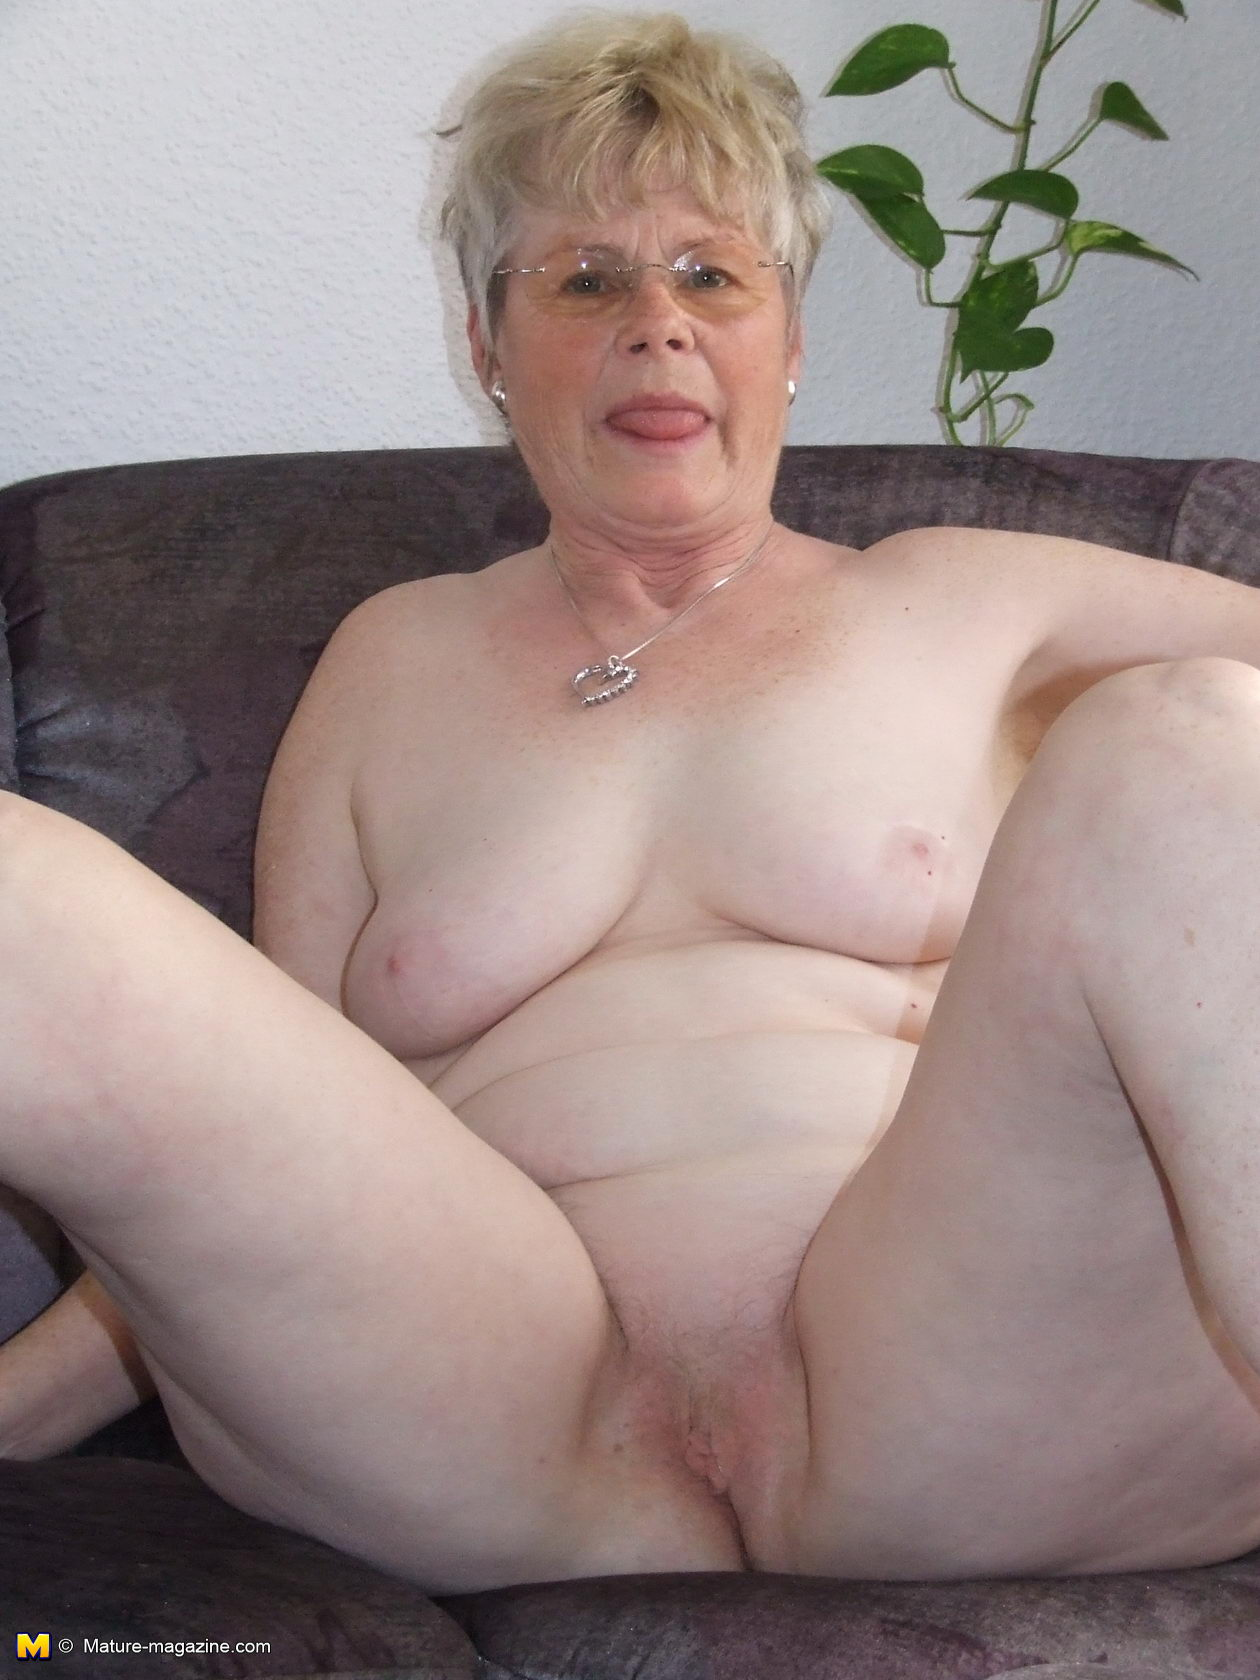 Naked pics of old ladies